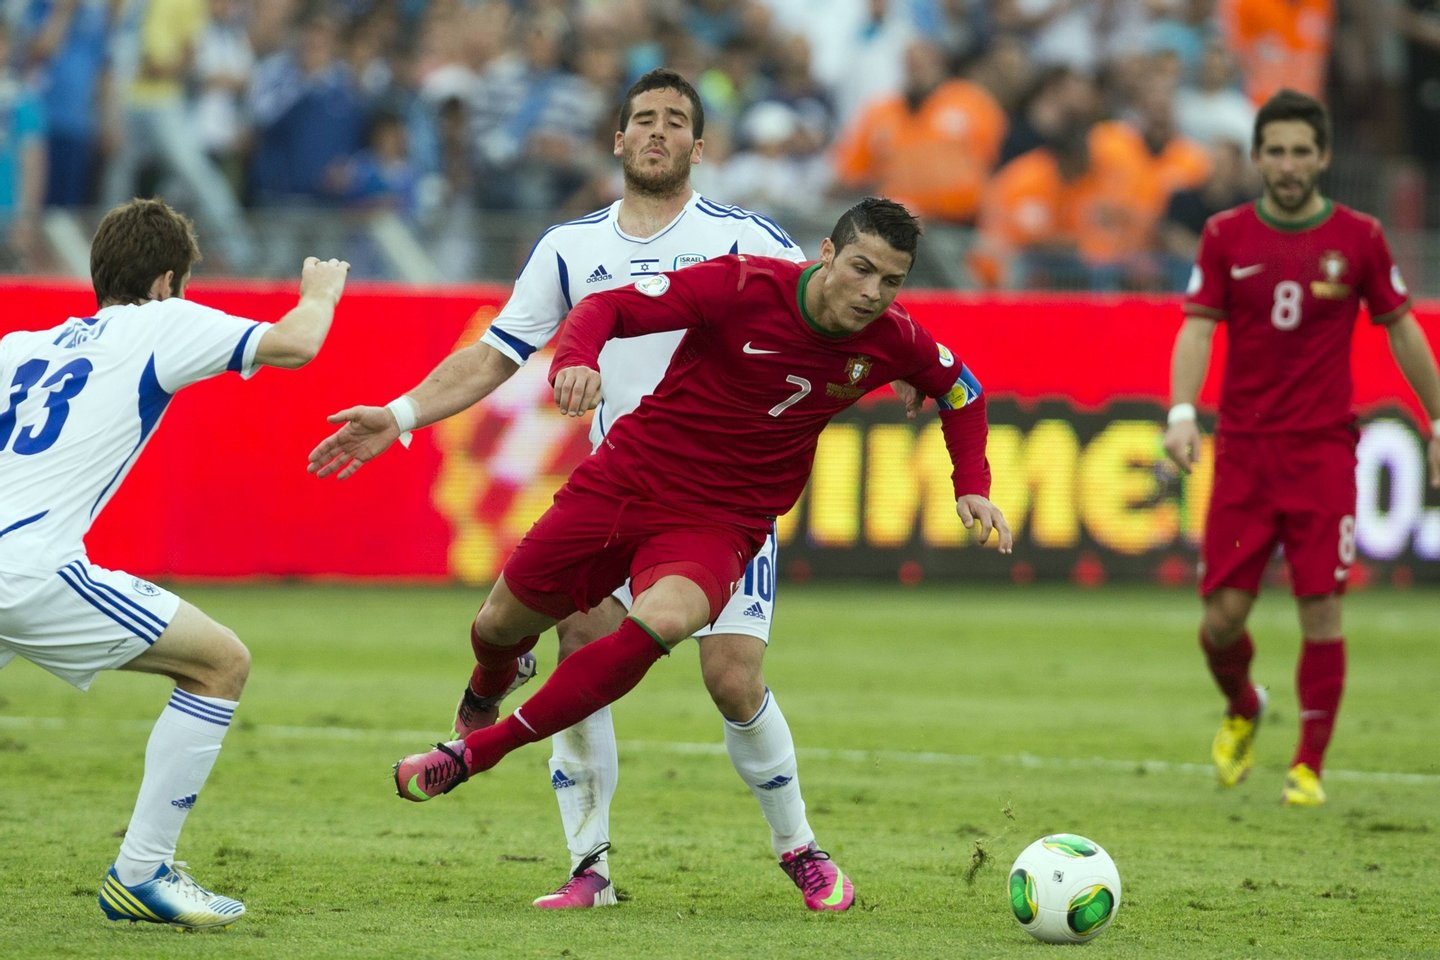 Israeli midfielder Gal alberman (back) is challenged by Portuguese forward Cristiano Ronaldo (front) during the FIFA 2014 World Cup European zone qualifying group F match between Israel and Portugal at Ramat Gan Stadium, near Tel Aviv, on March 22, 2013. AFP PHOTO / JACK GUEZ (Photo credit should read JACK GUEZ/AFP/Getty Images)